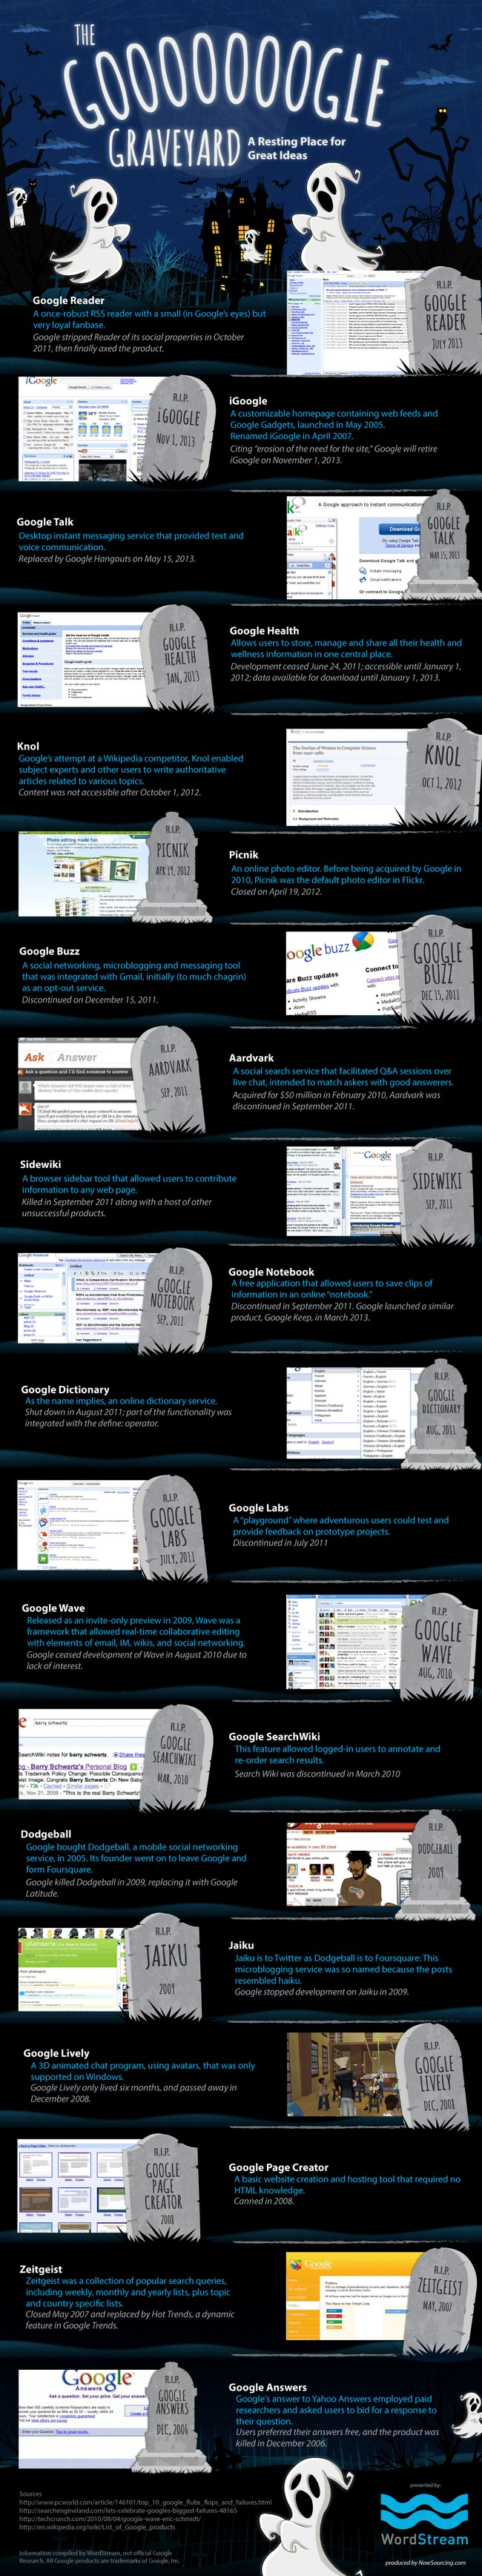 infographie-cimetiere-applications-google